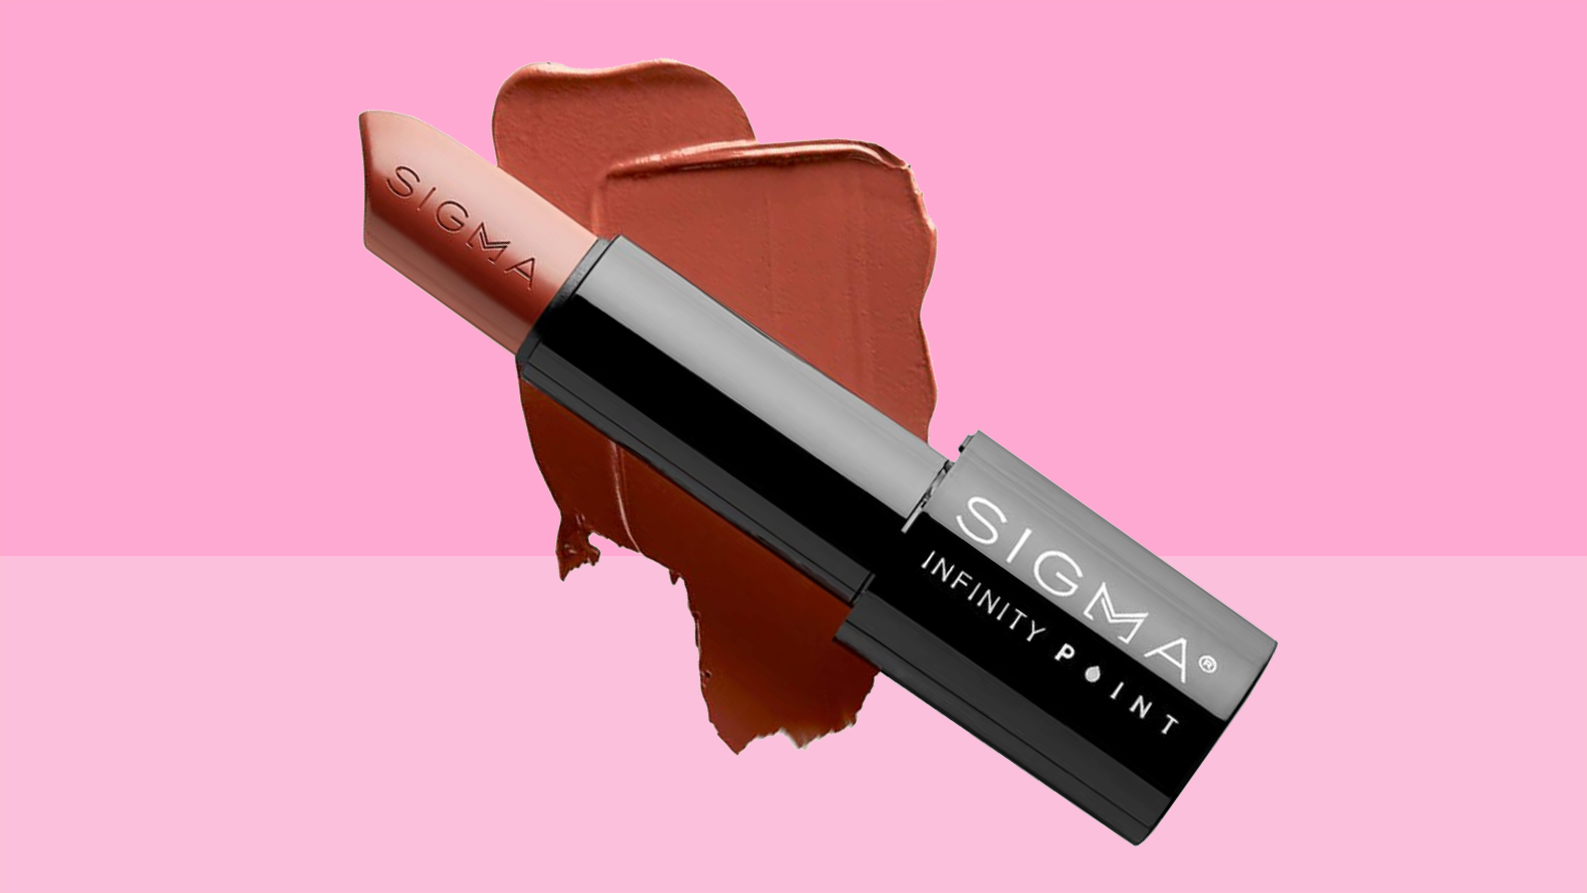 sigma-infinity-point-lipstick-review